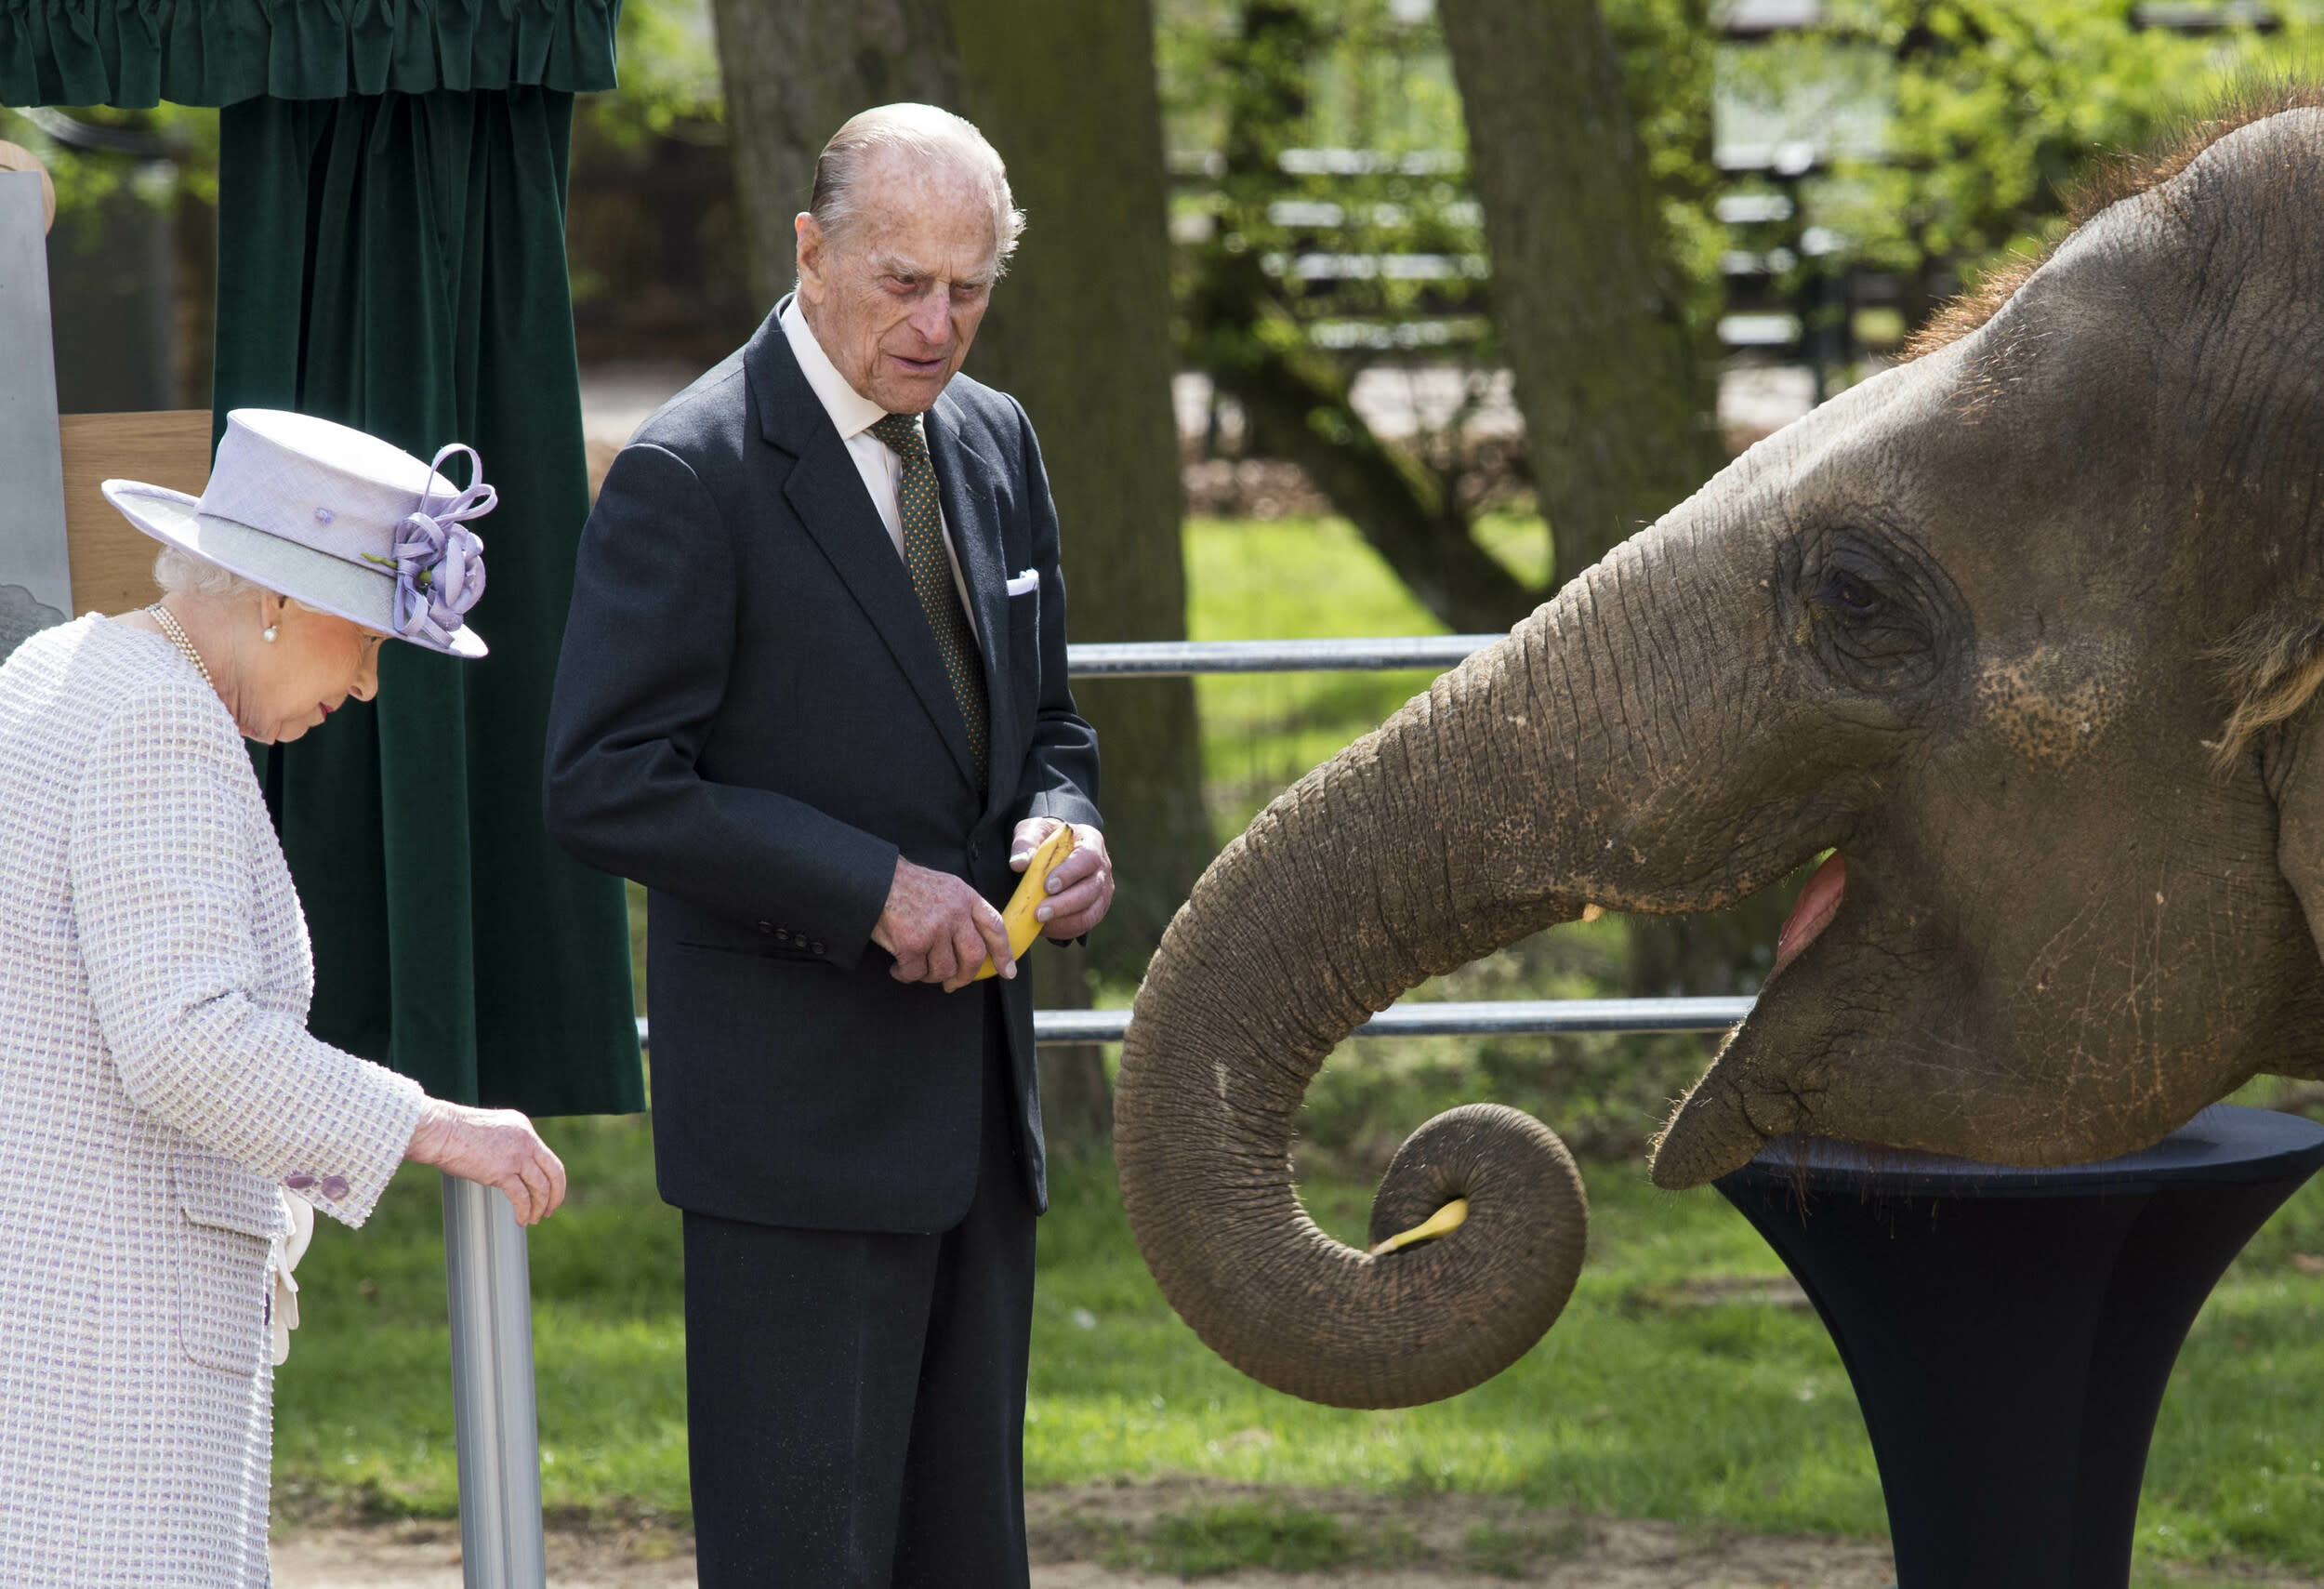 Photo by: KGC/STAR MAX/IPx 2017 4/11/17 Queen Elizabeth II and Prince Philip, Duke of Edinburgh, feed Donna a 7 year old Asian Elephant during a visit to open the new Centre for Elephant Care at ZSL Whipsnade Zoo.